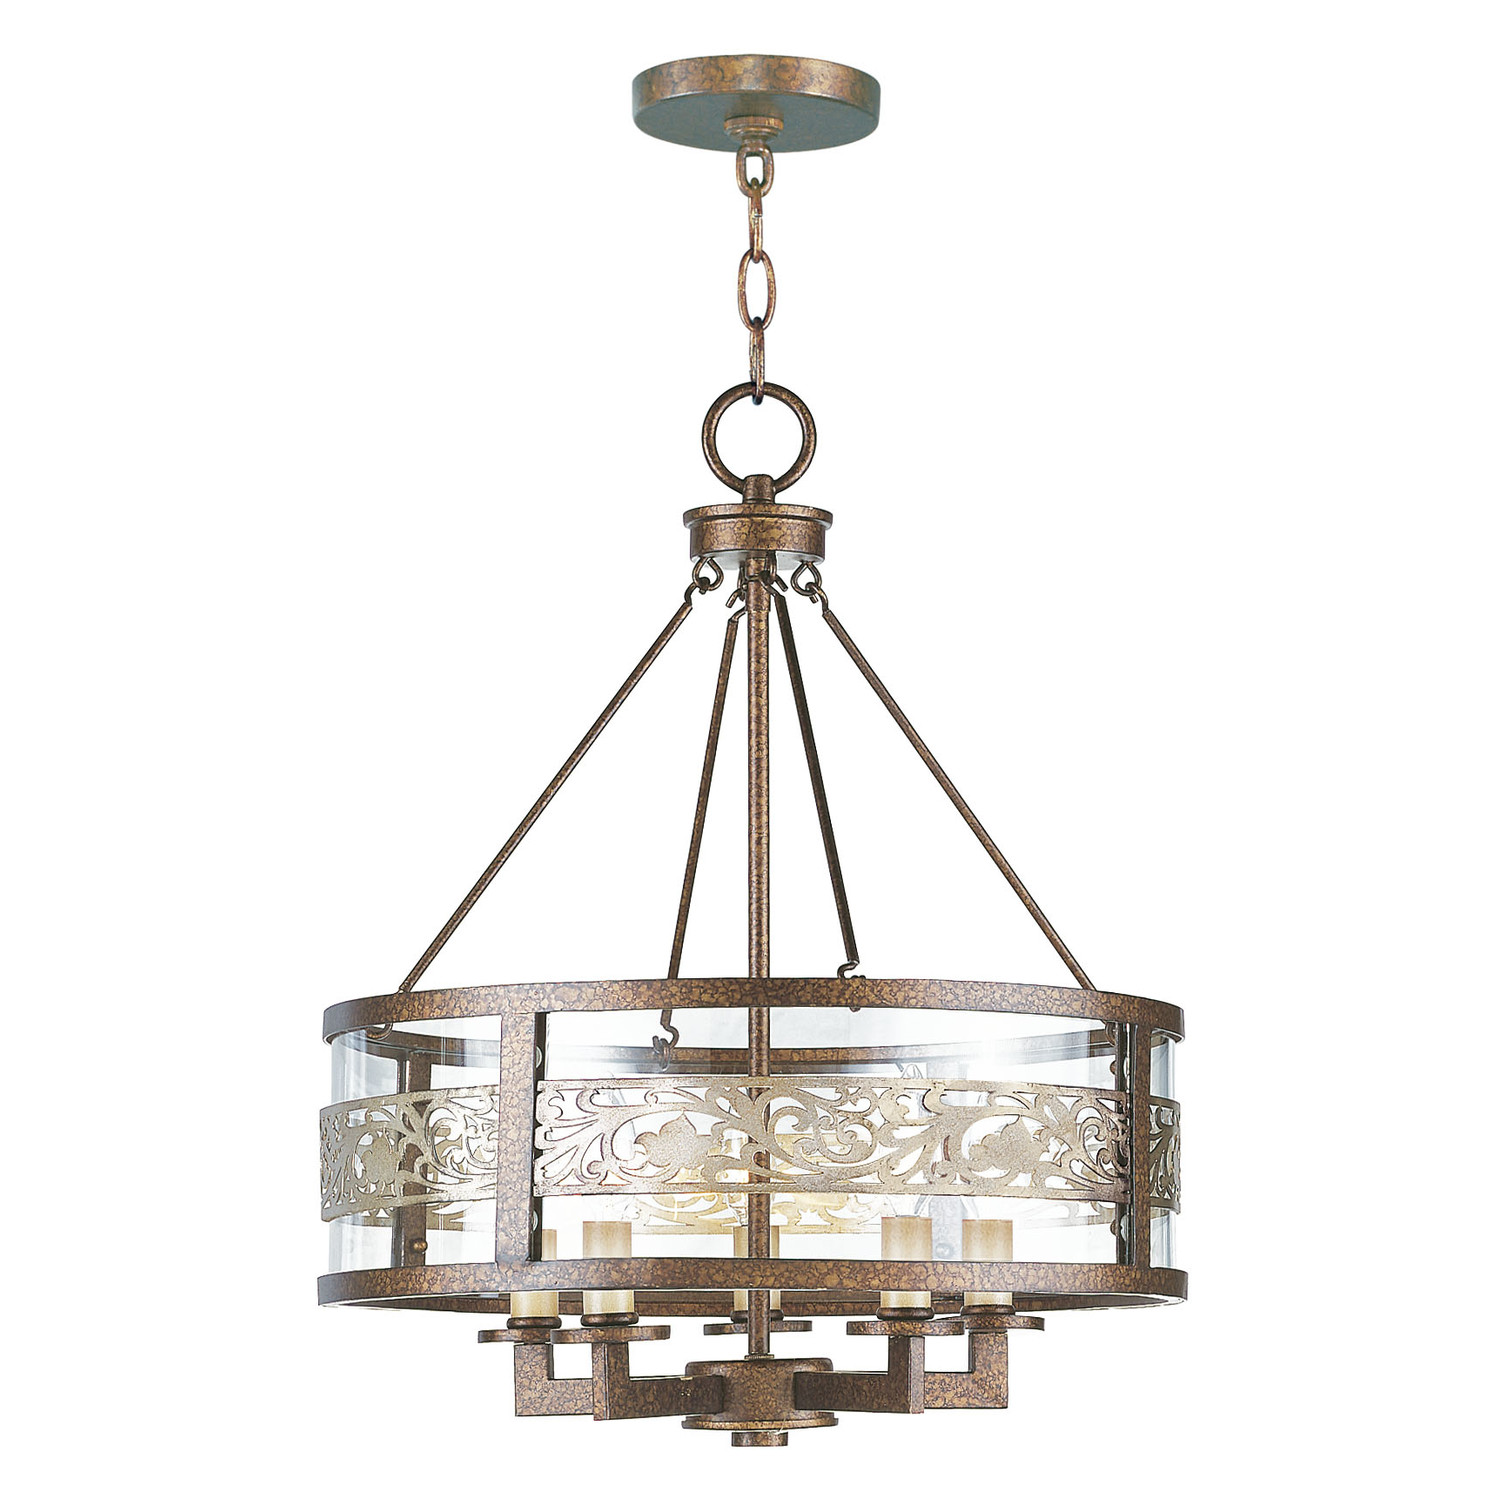 Luxury Livex Lighting Waverly Foyer Pendant For Home Lighting Ideas